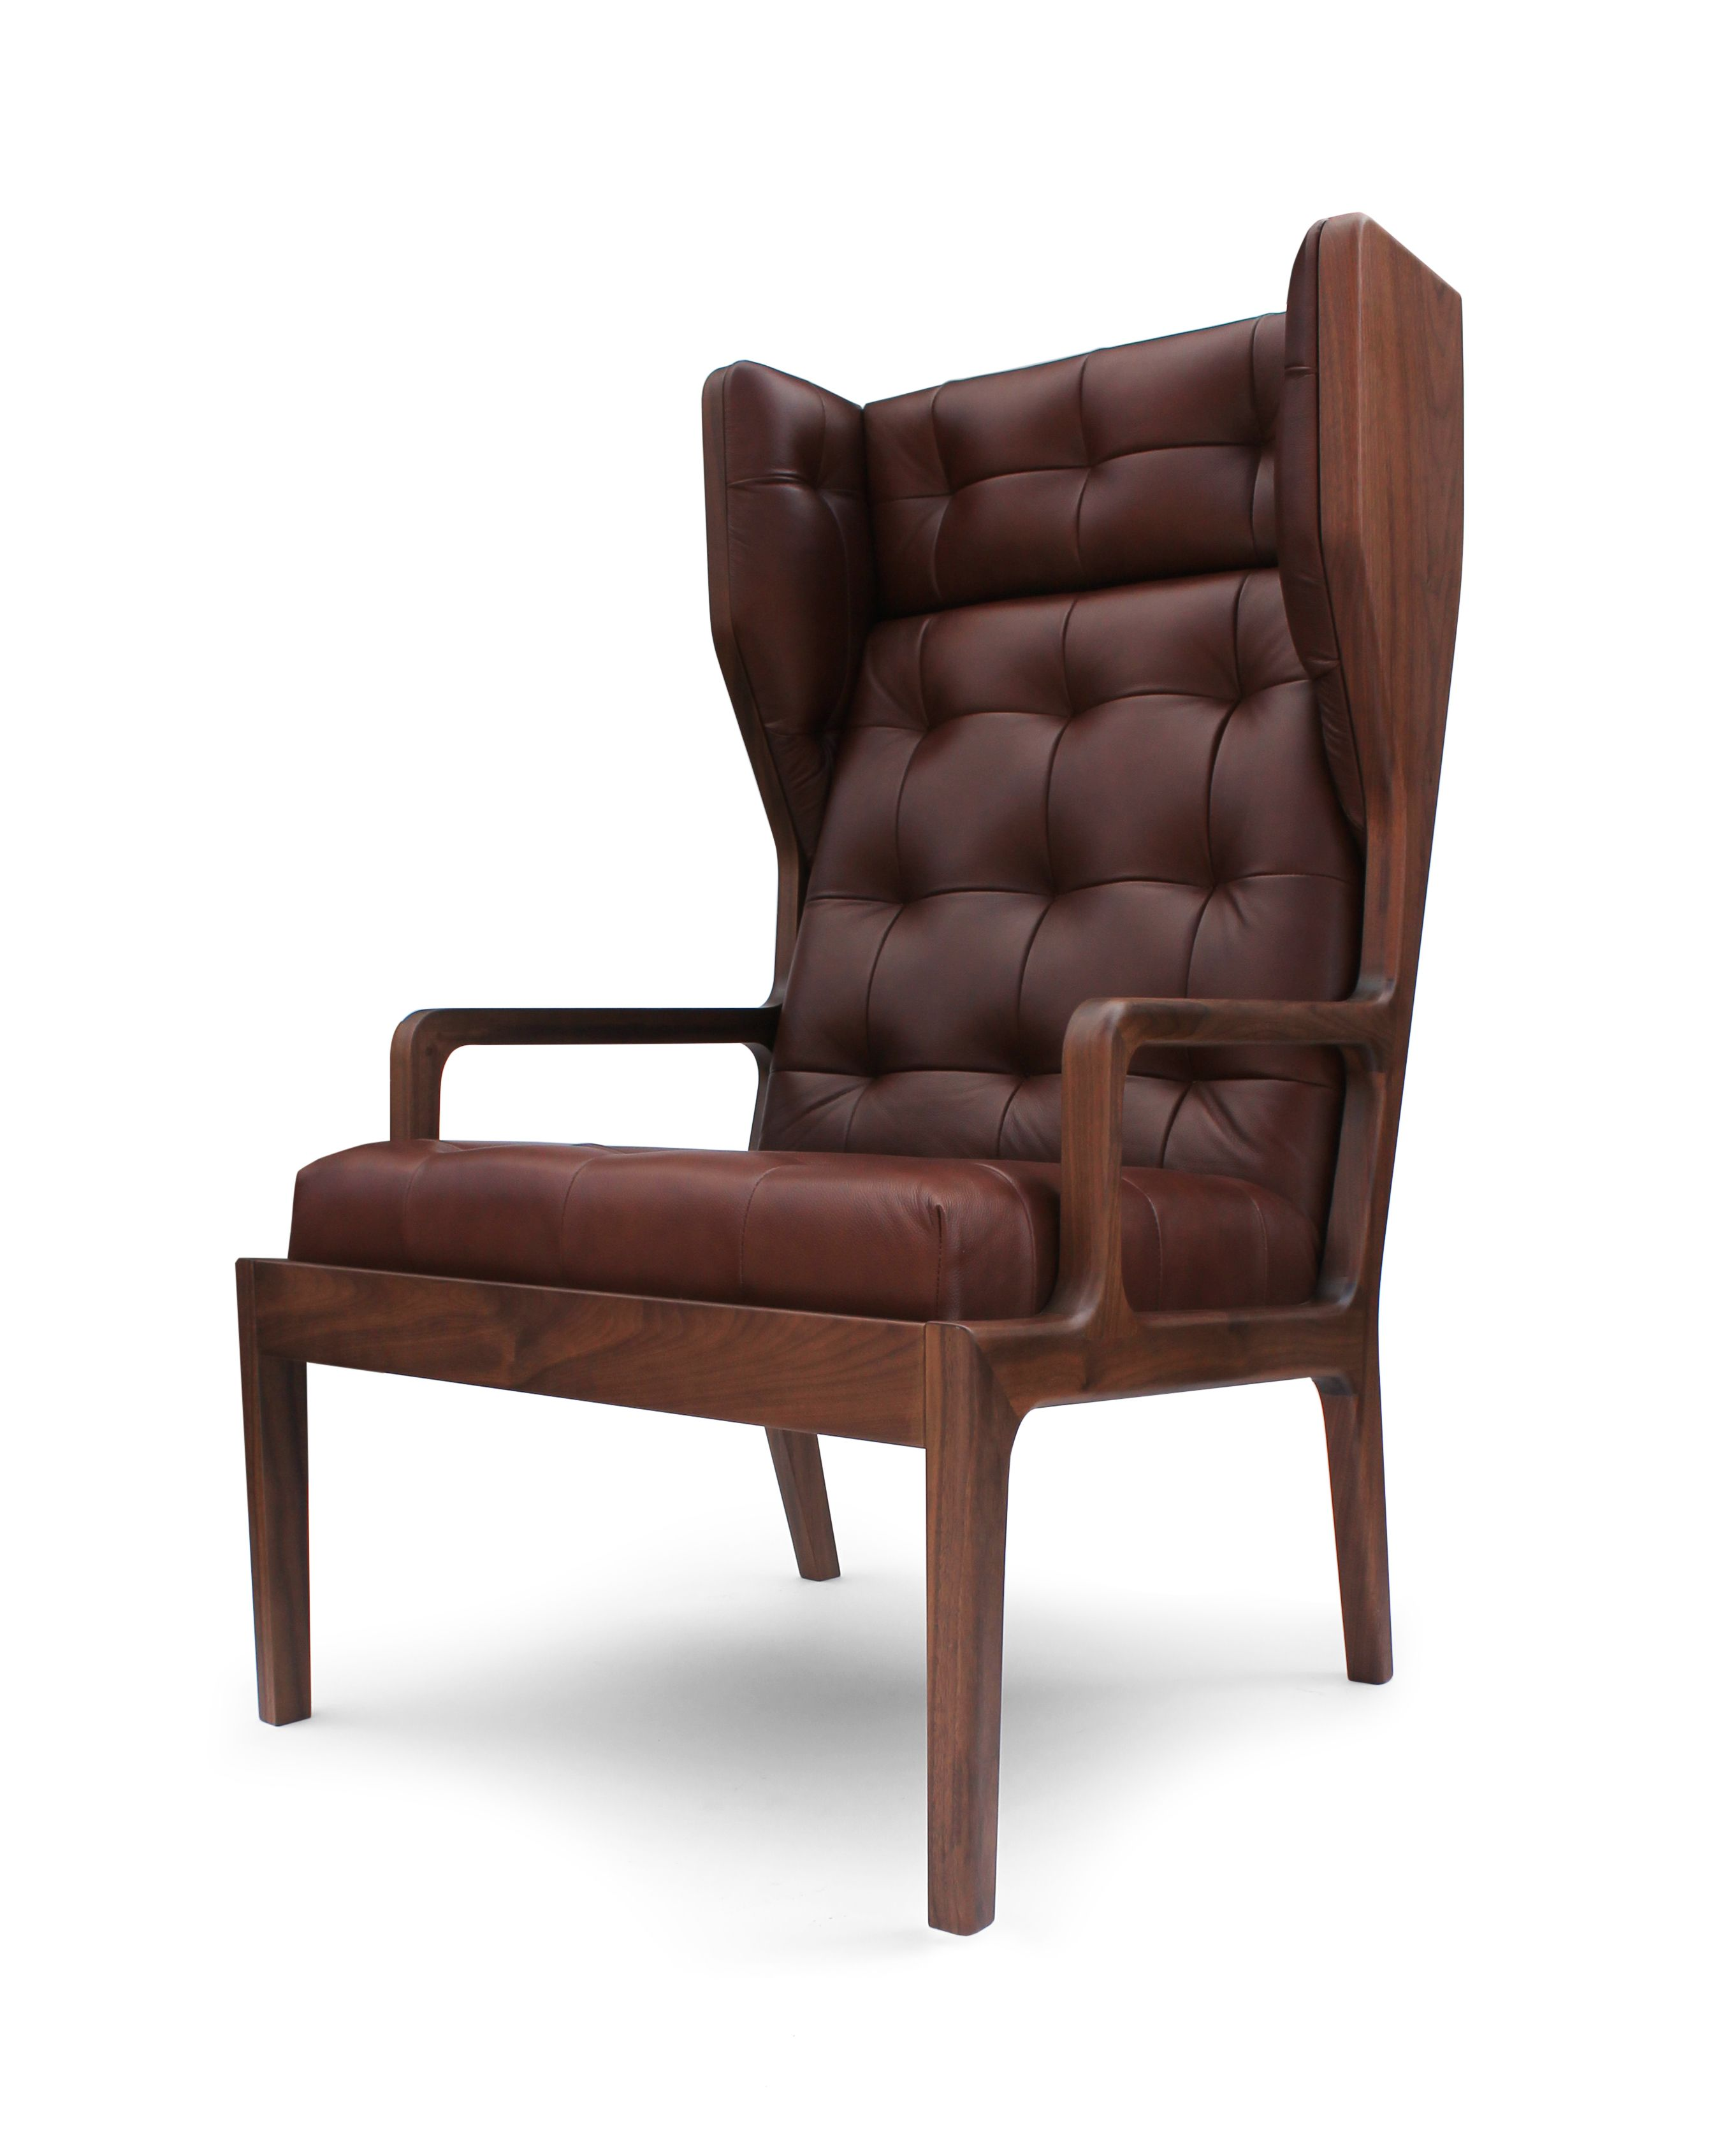 Design james design hardwood wingback chair dining room chair - James Uk Wing Chair